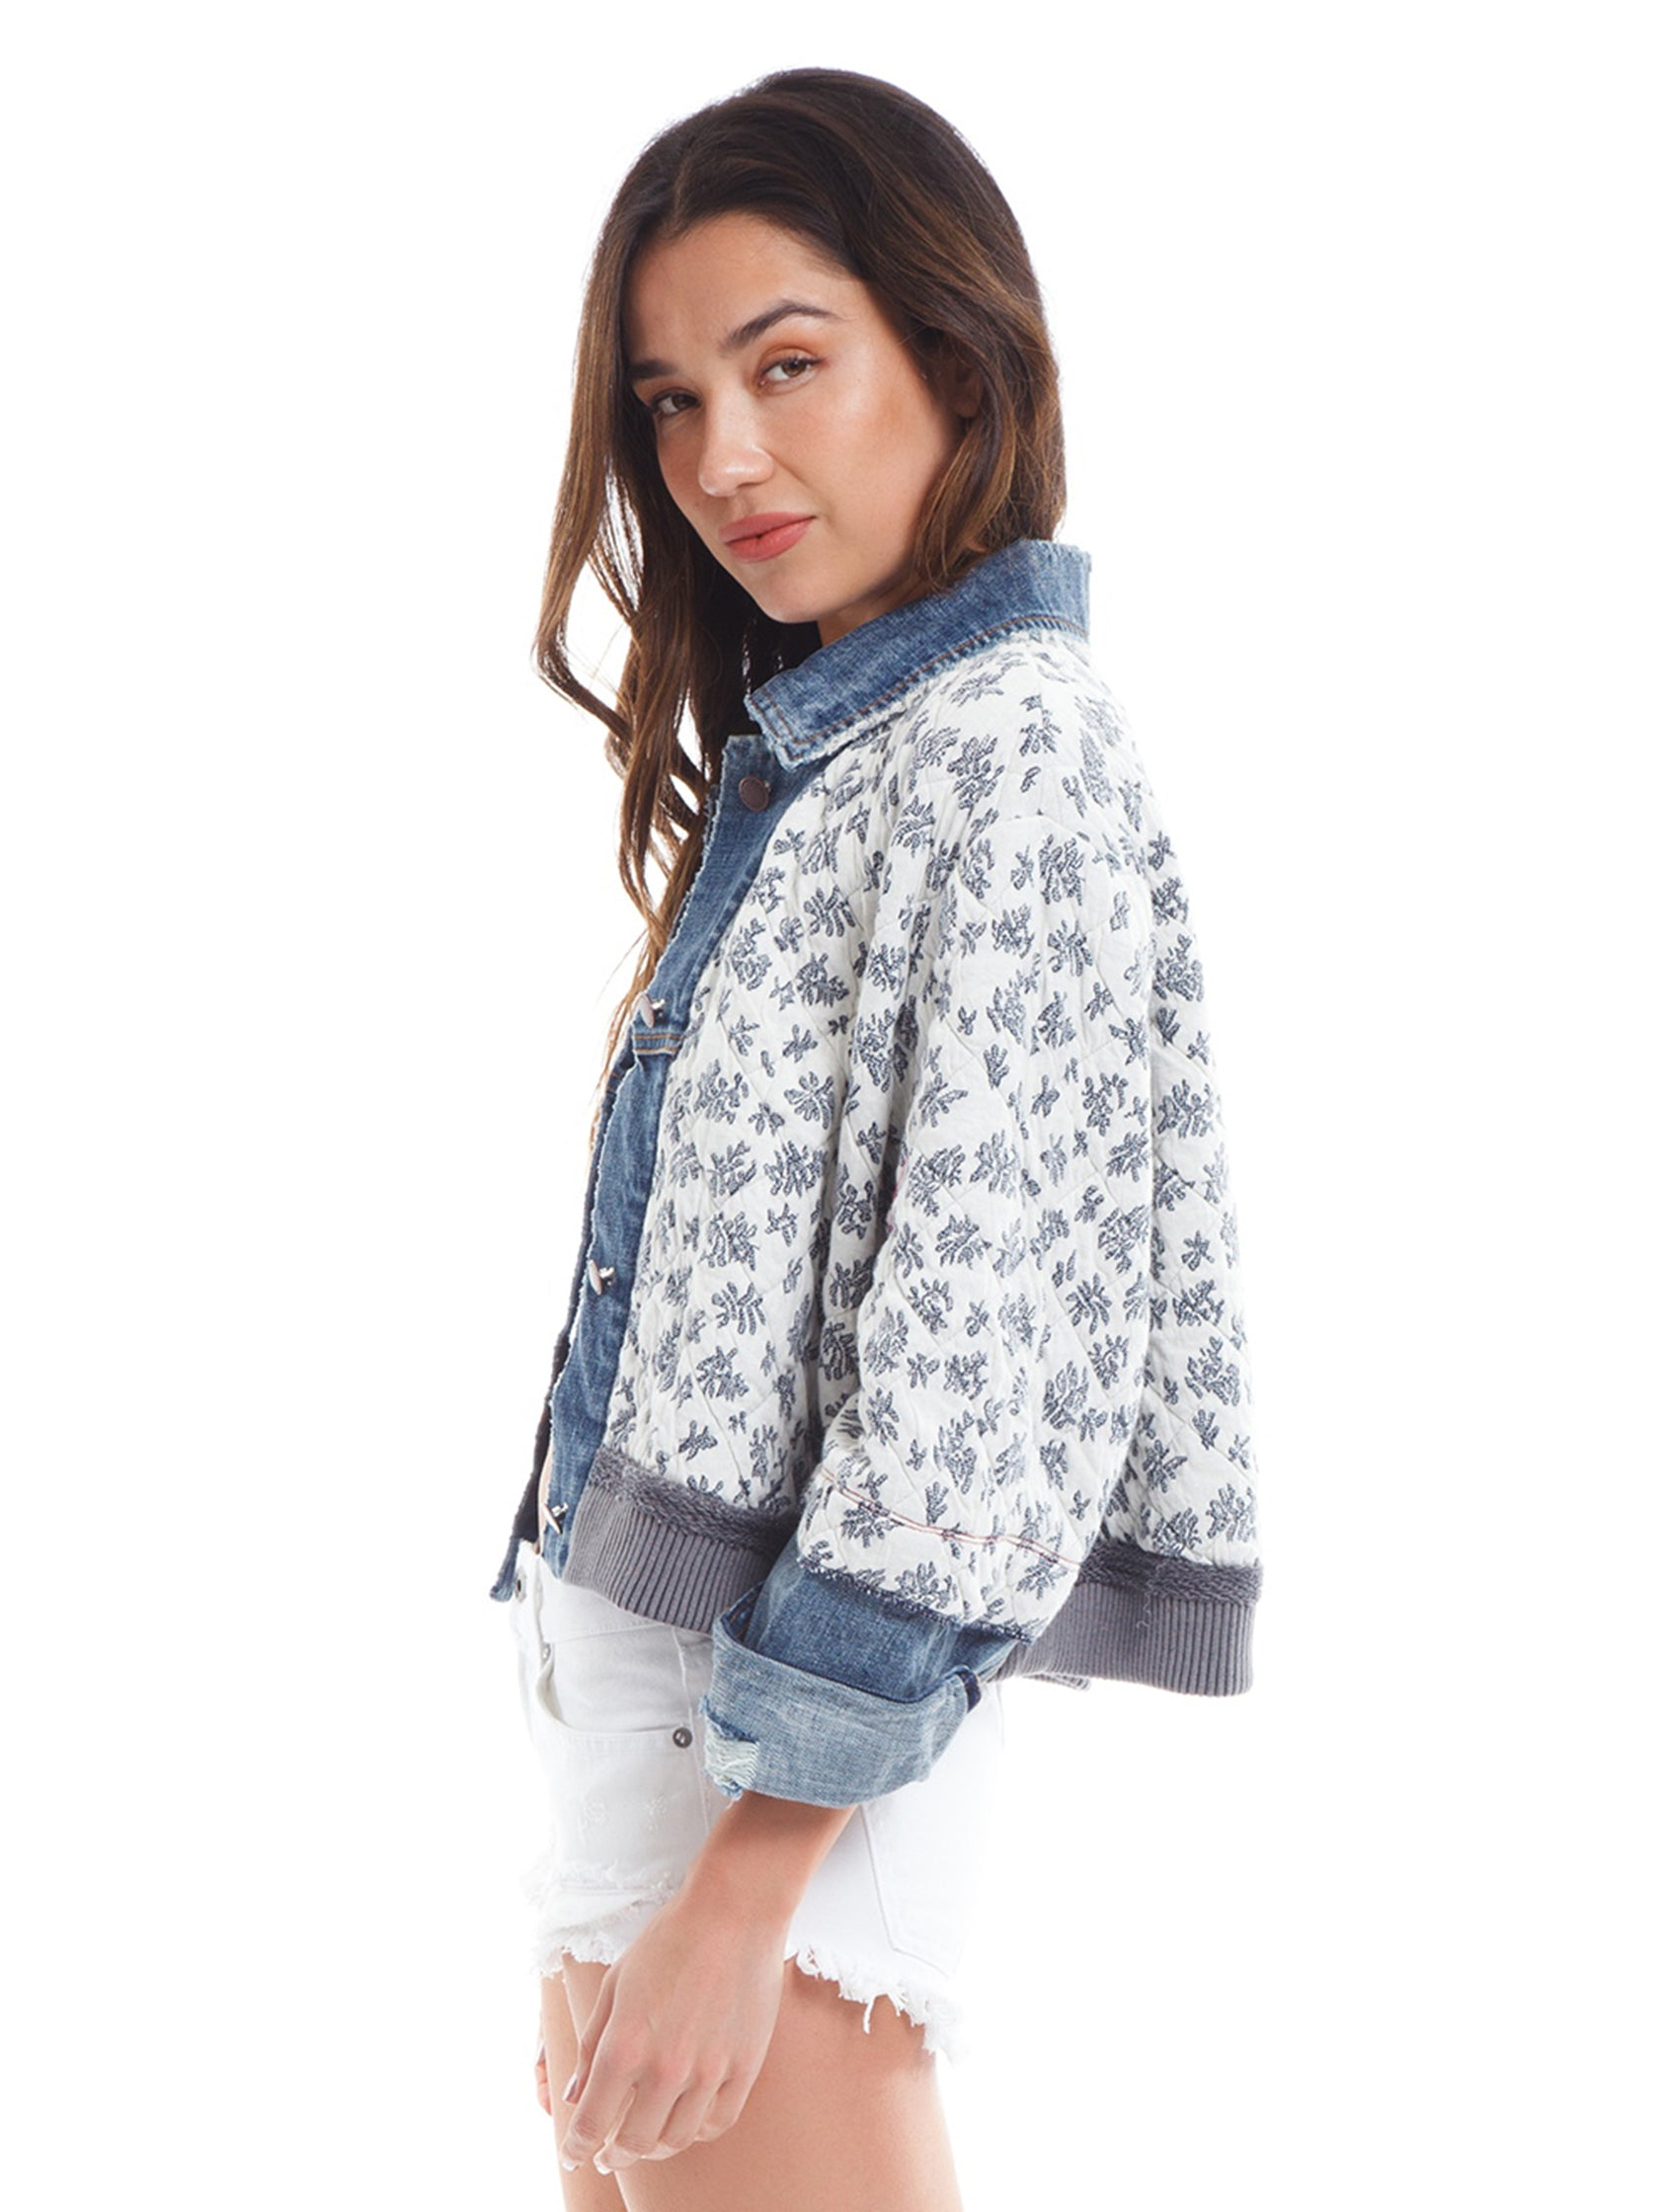 Women wearing a jacket rental from Free People called Ditsy Denim Jacket